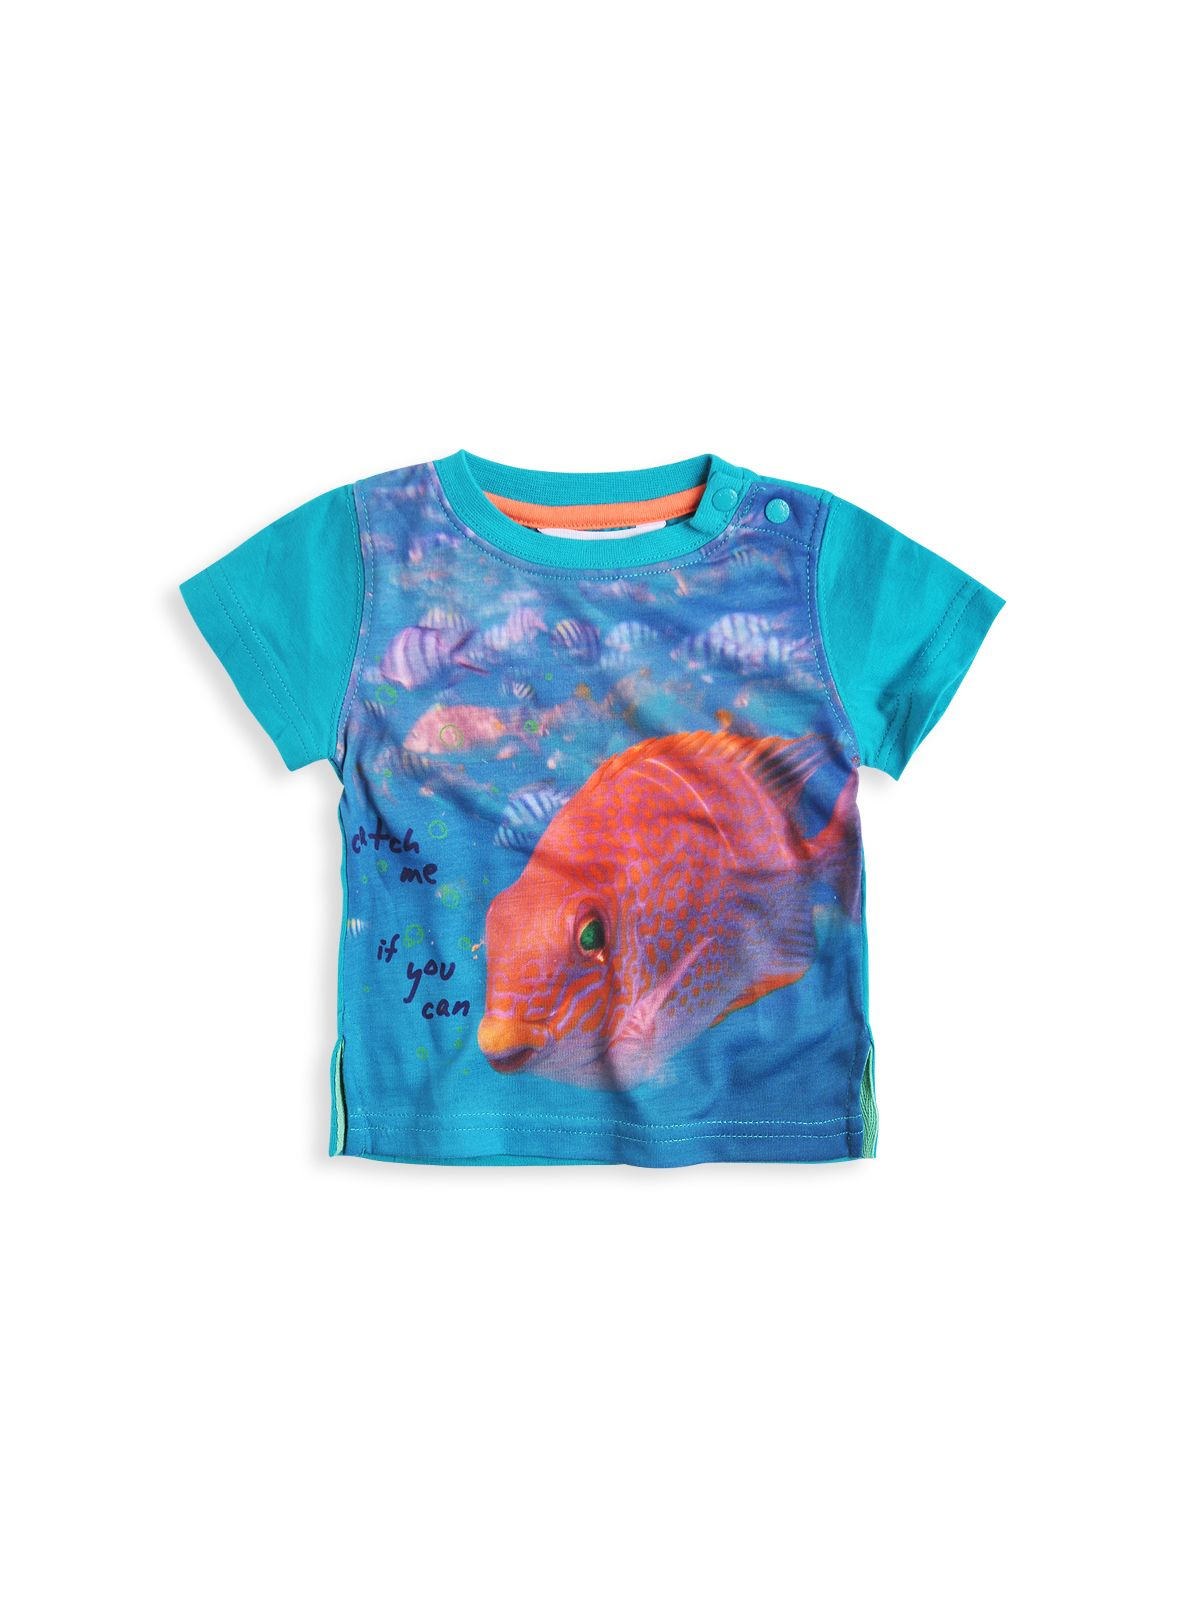 Boys short sleeve fashion top